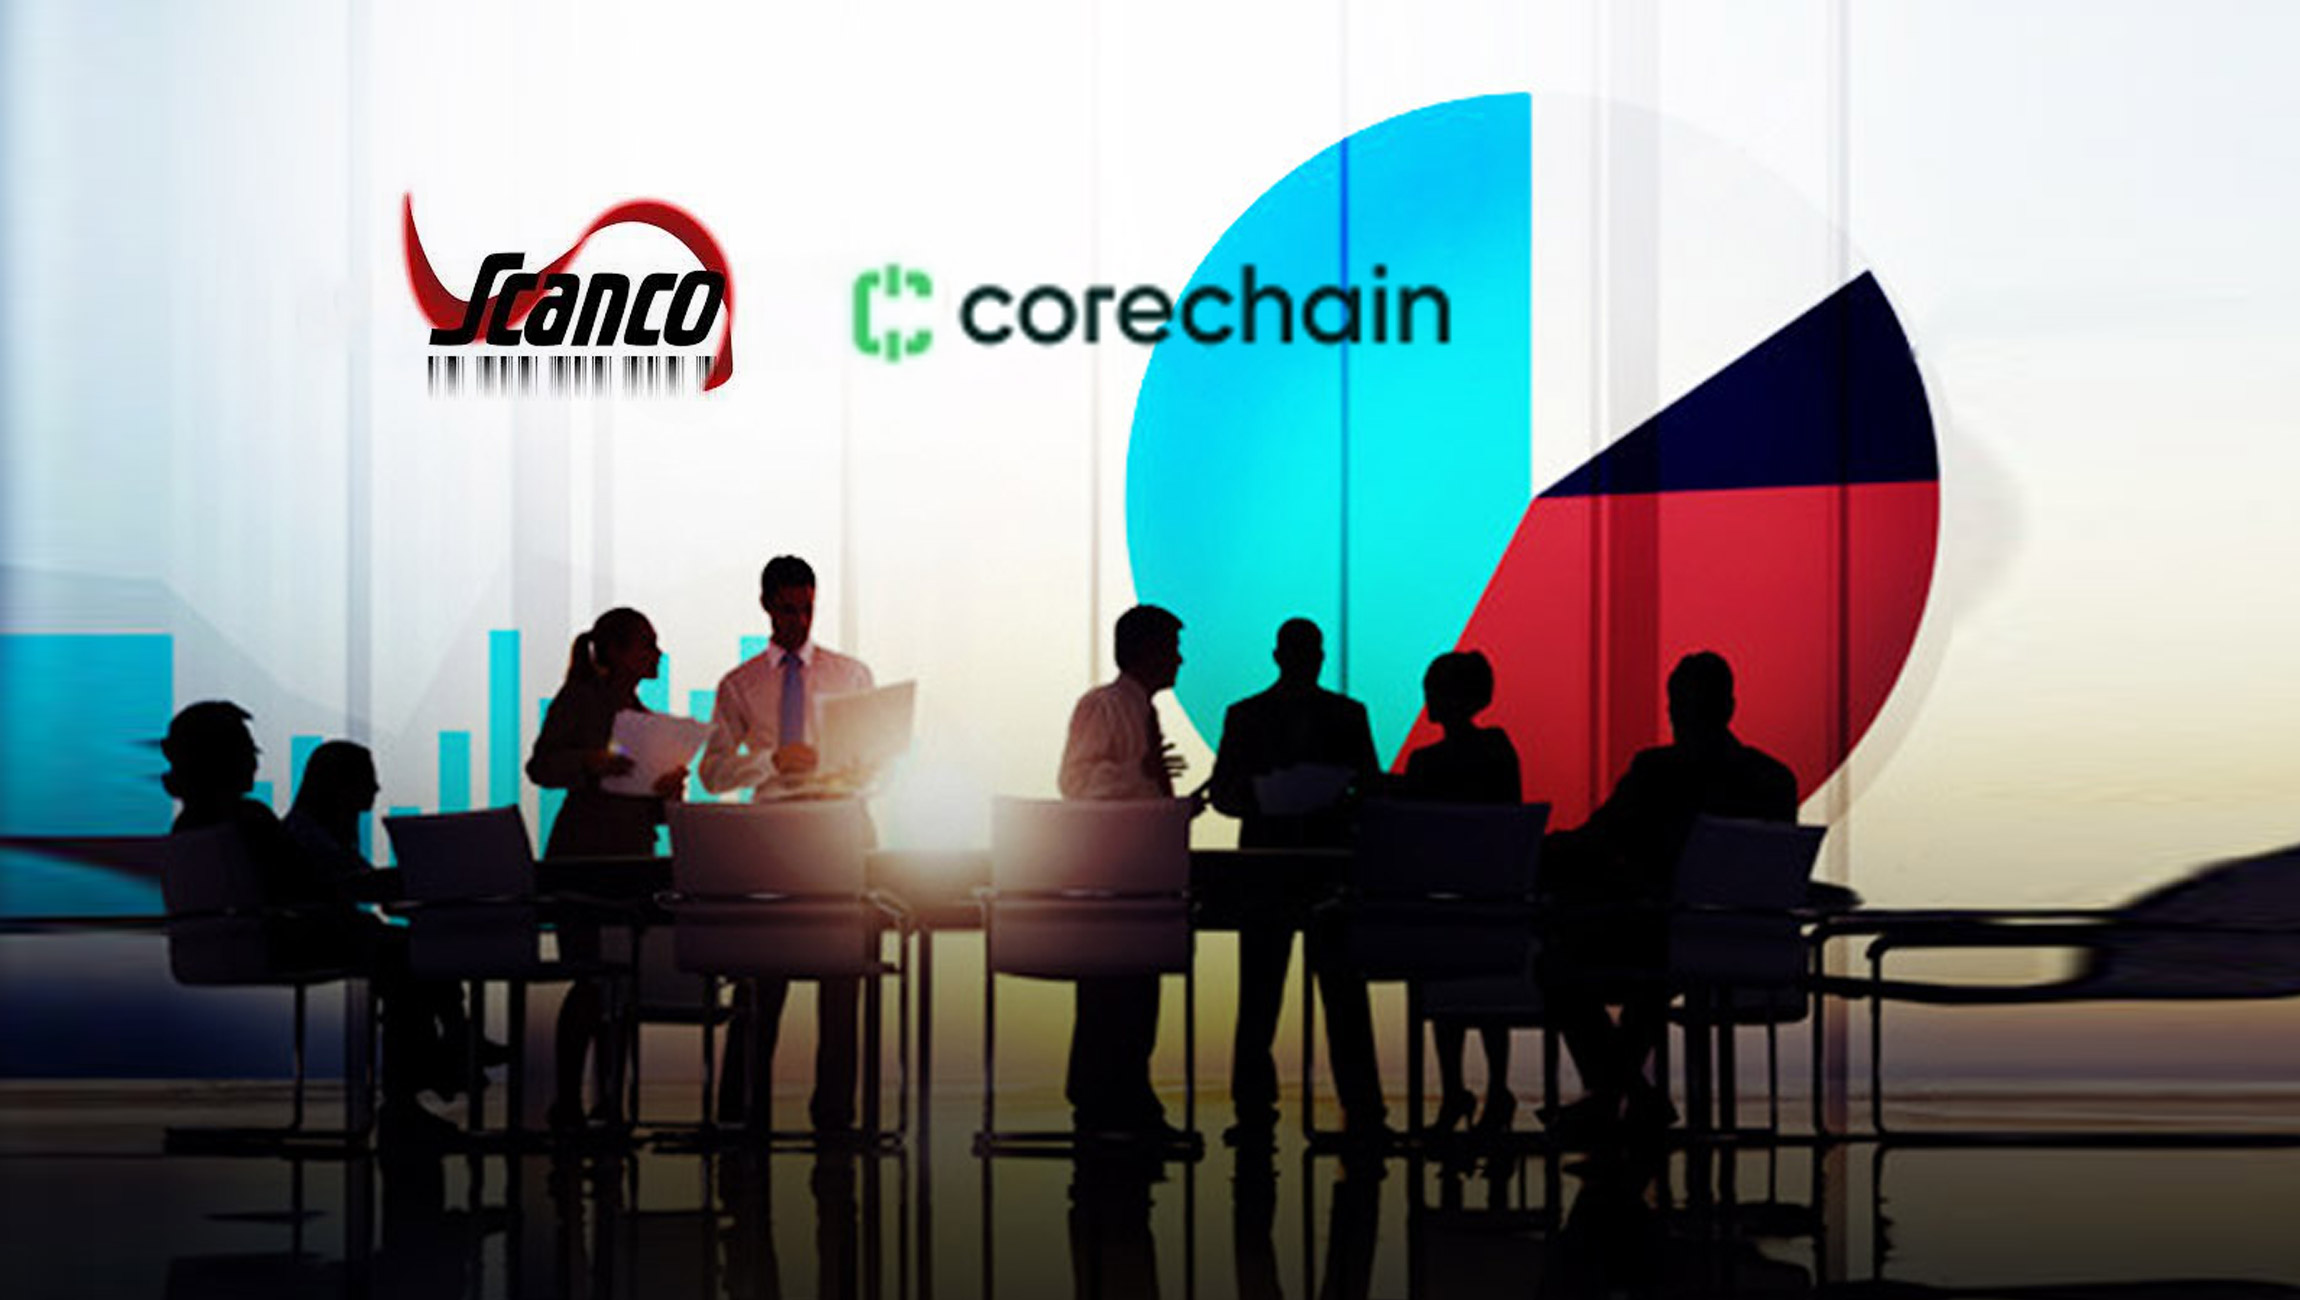 Scanco-and-CoreChain-Announce-Integrated-B2B-Payments-and-Supply-Chain-Finance-Solution